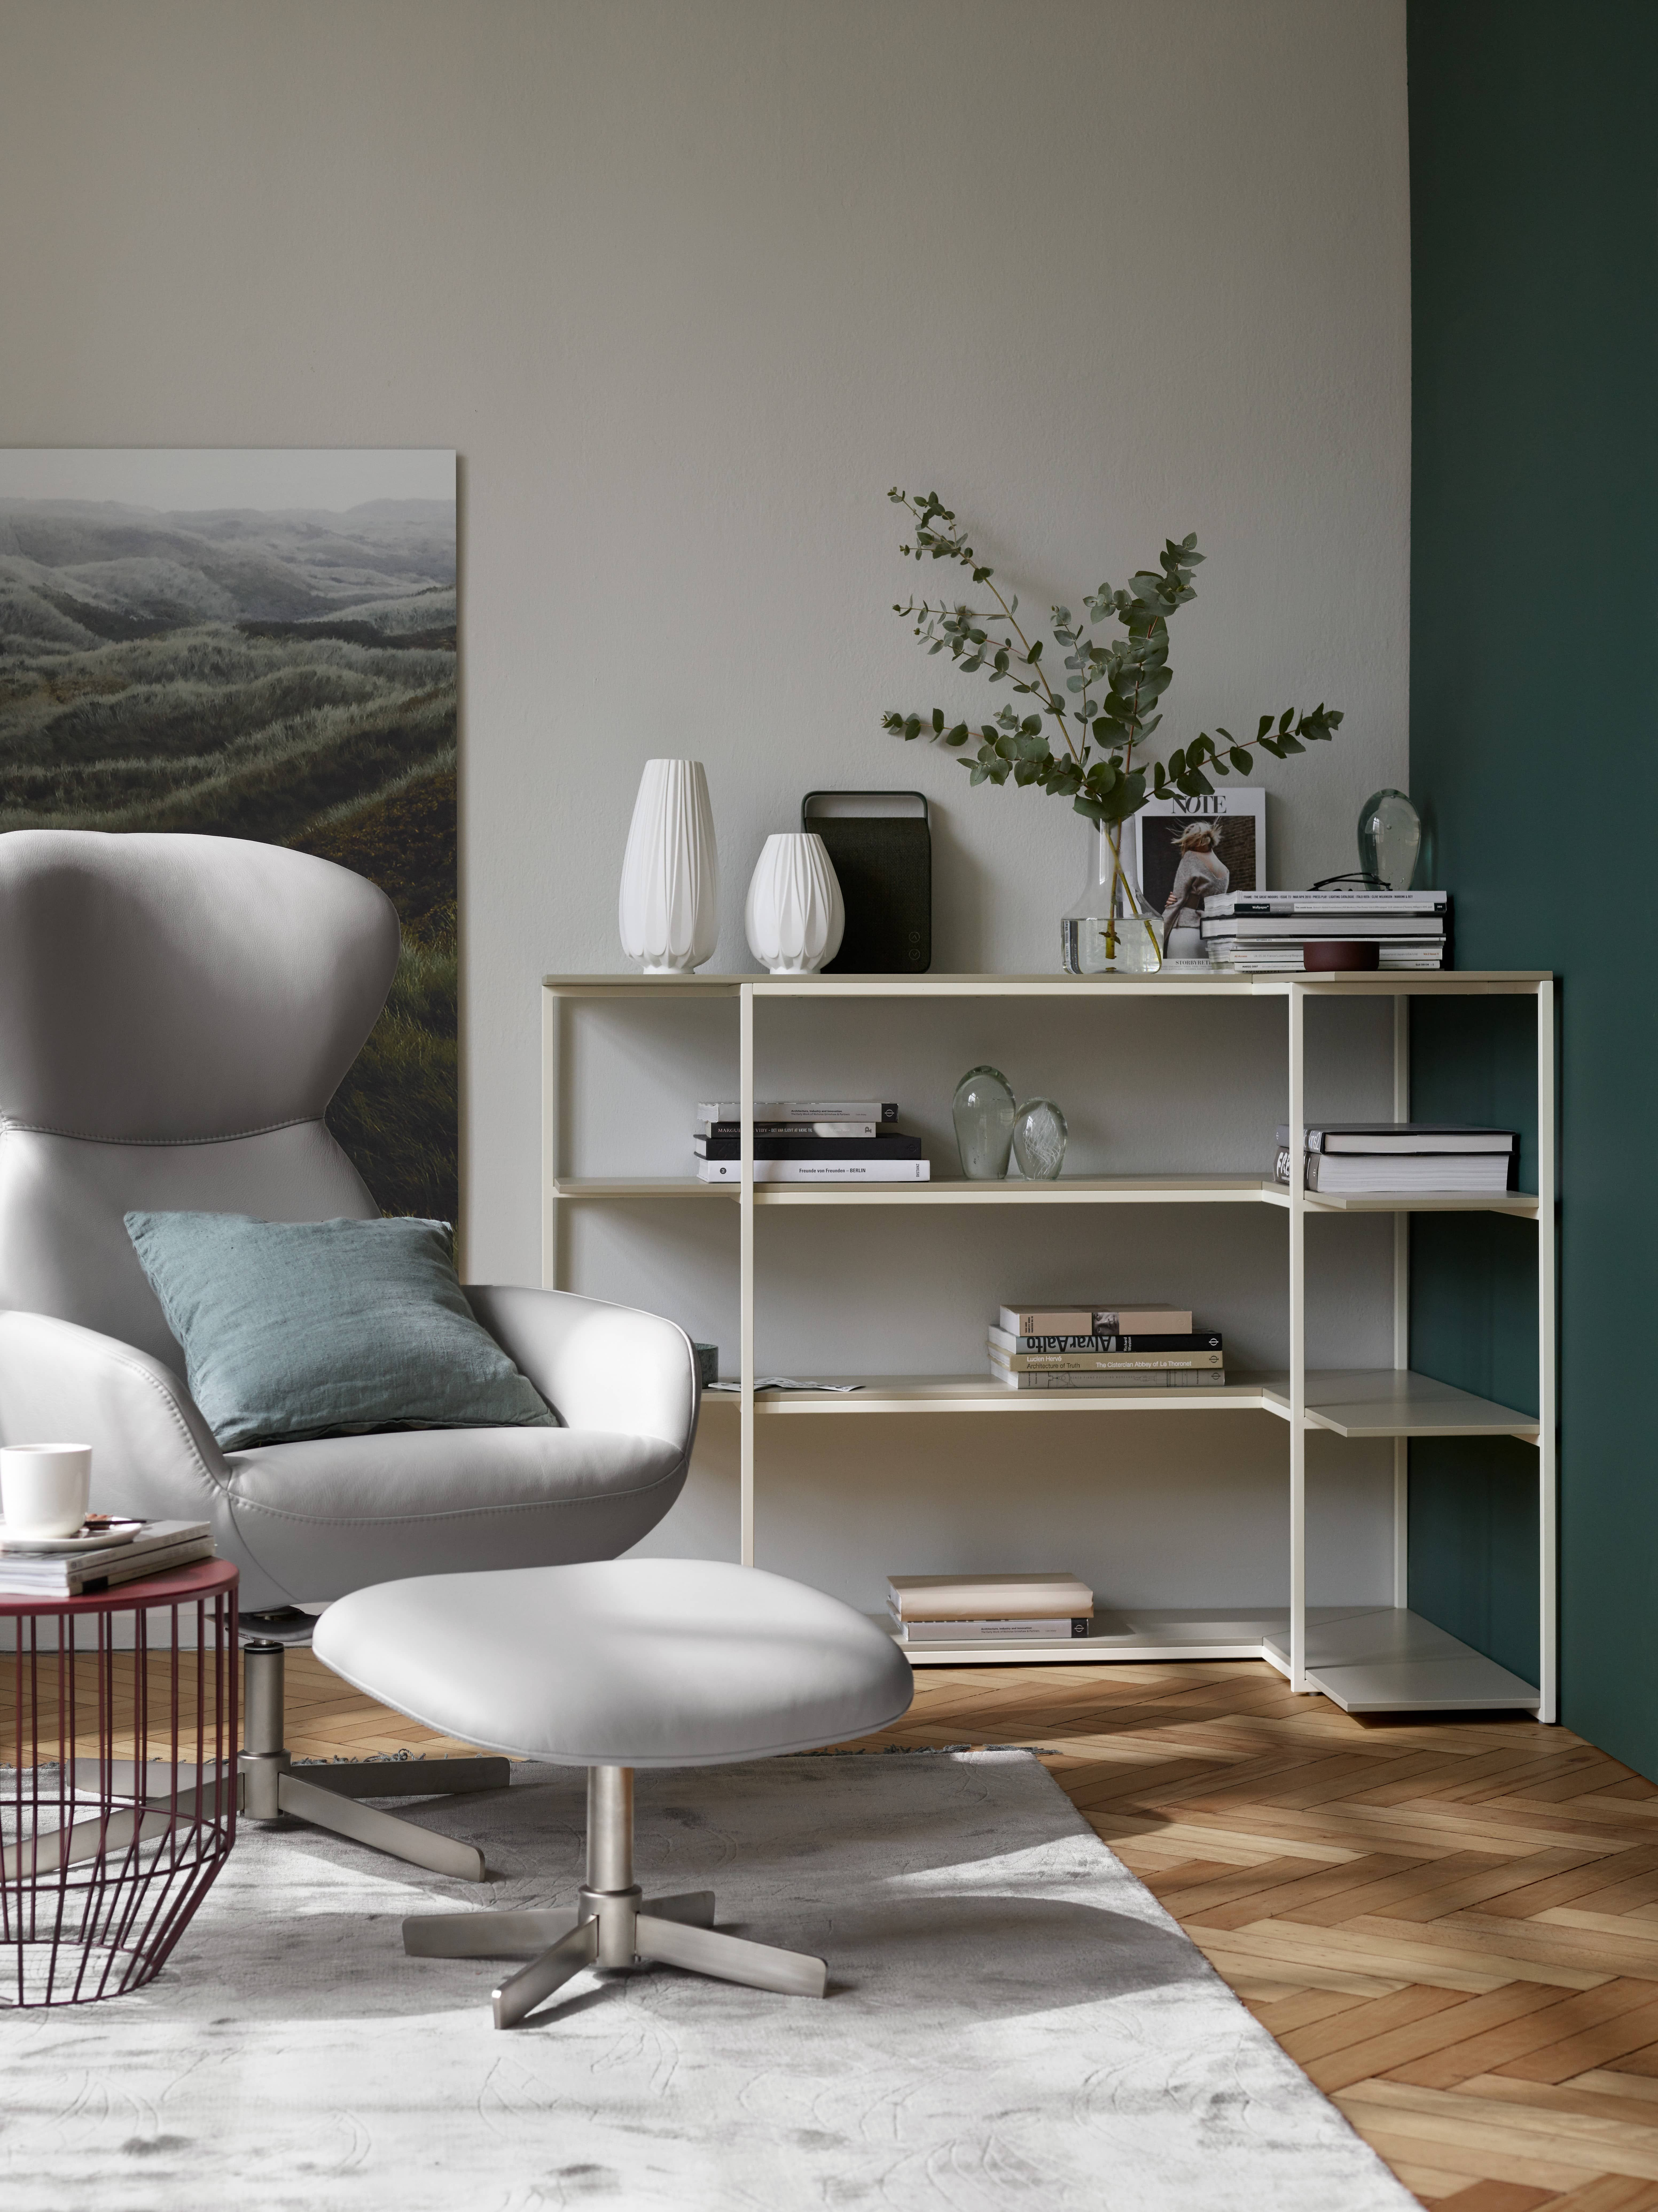 boconcept athena sessel mit bordeaux konsole boconcept. Black Bedroom Furniture Sets. Home Design Ideas